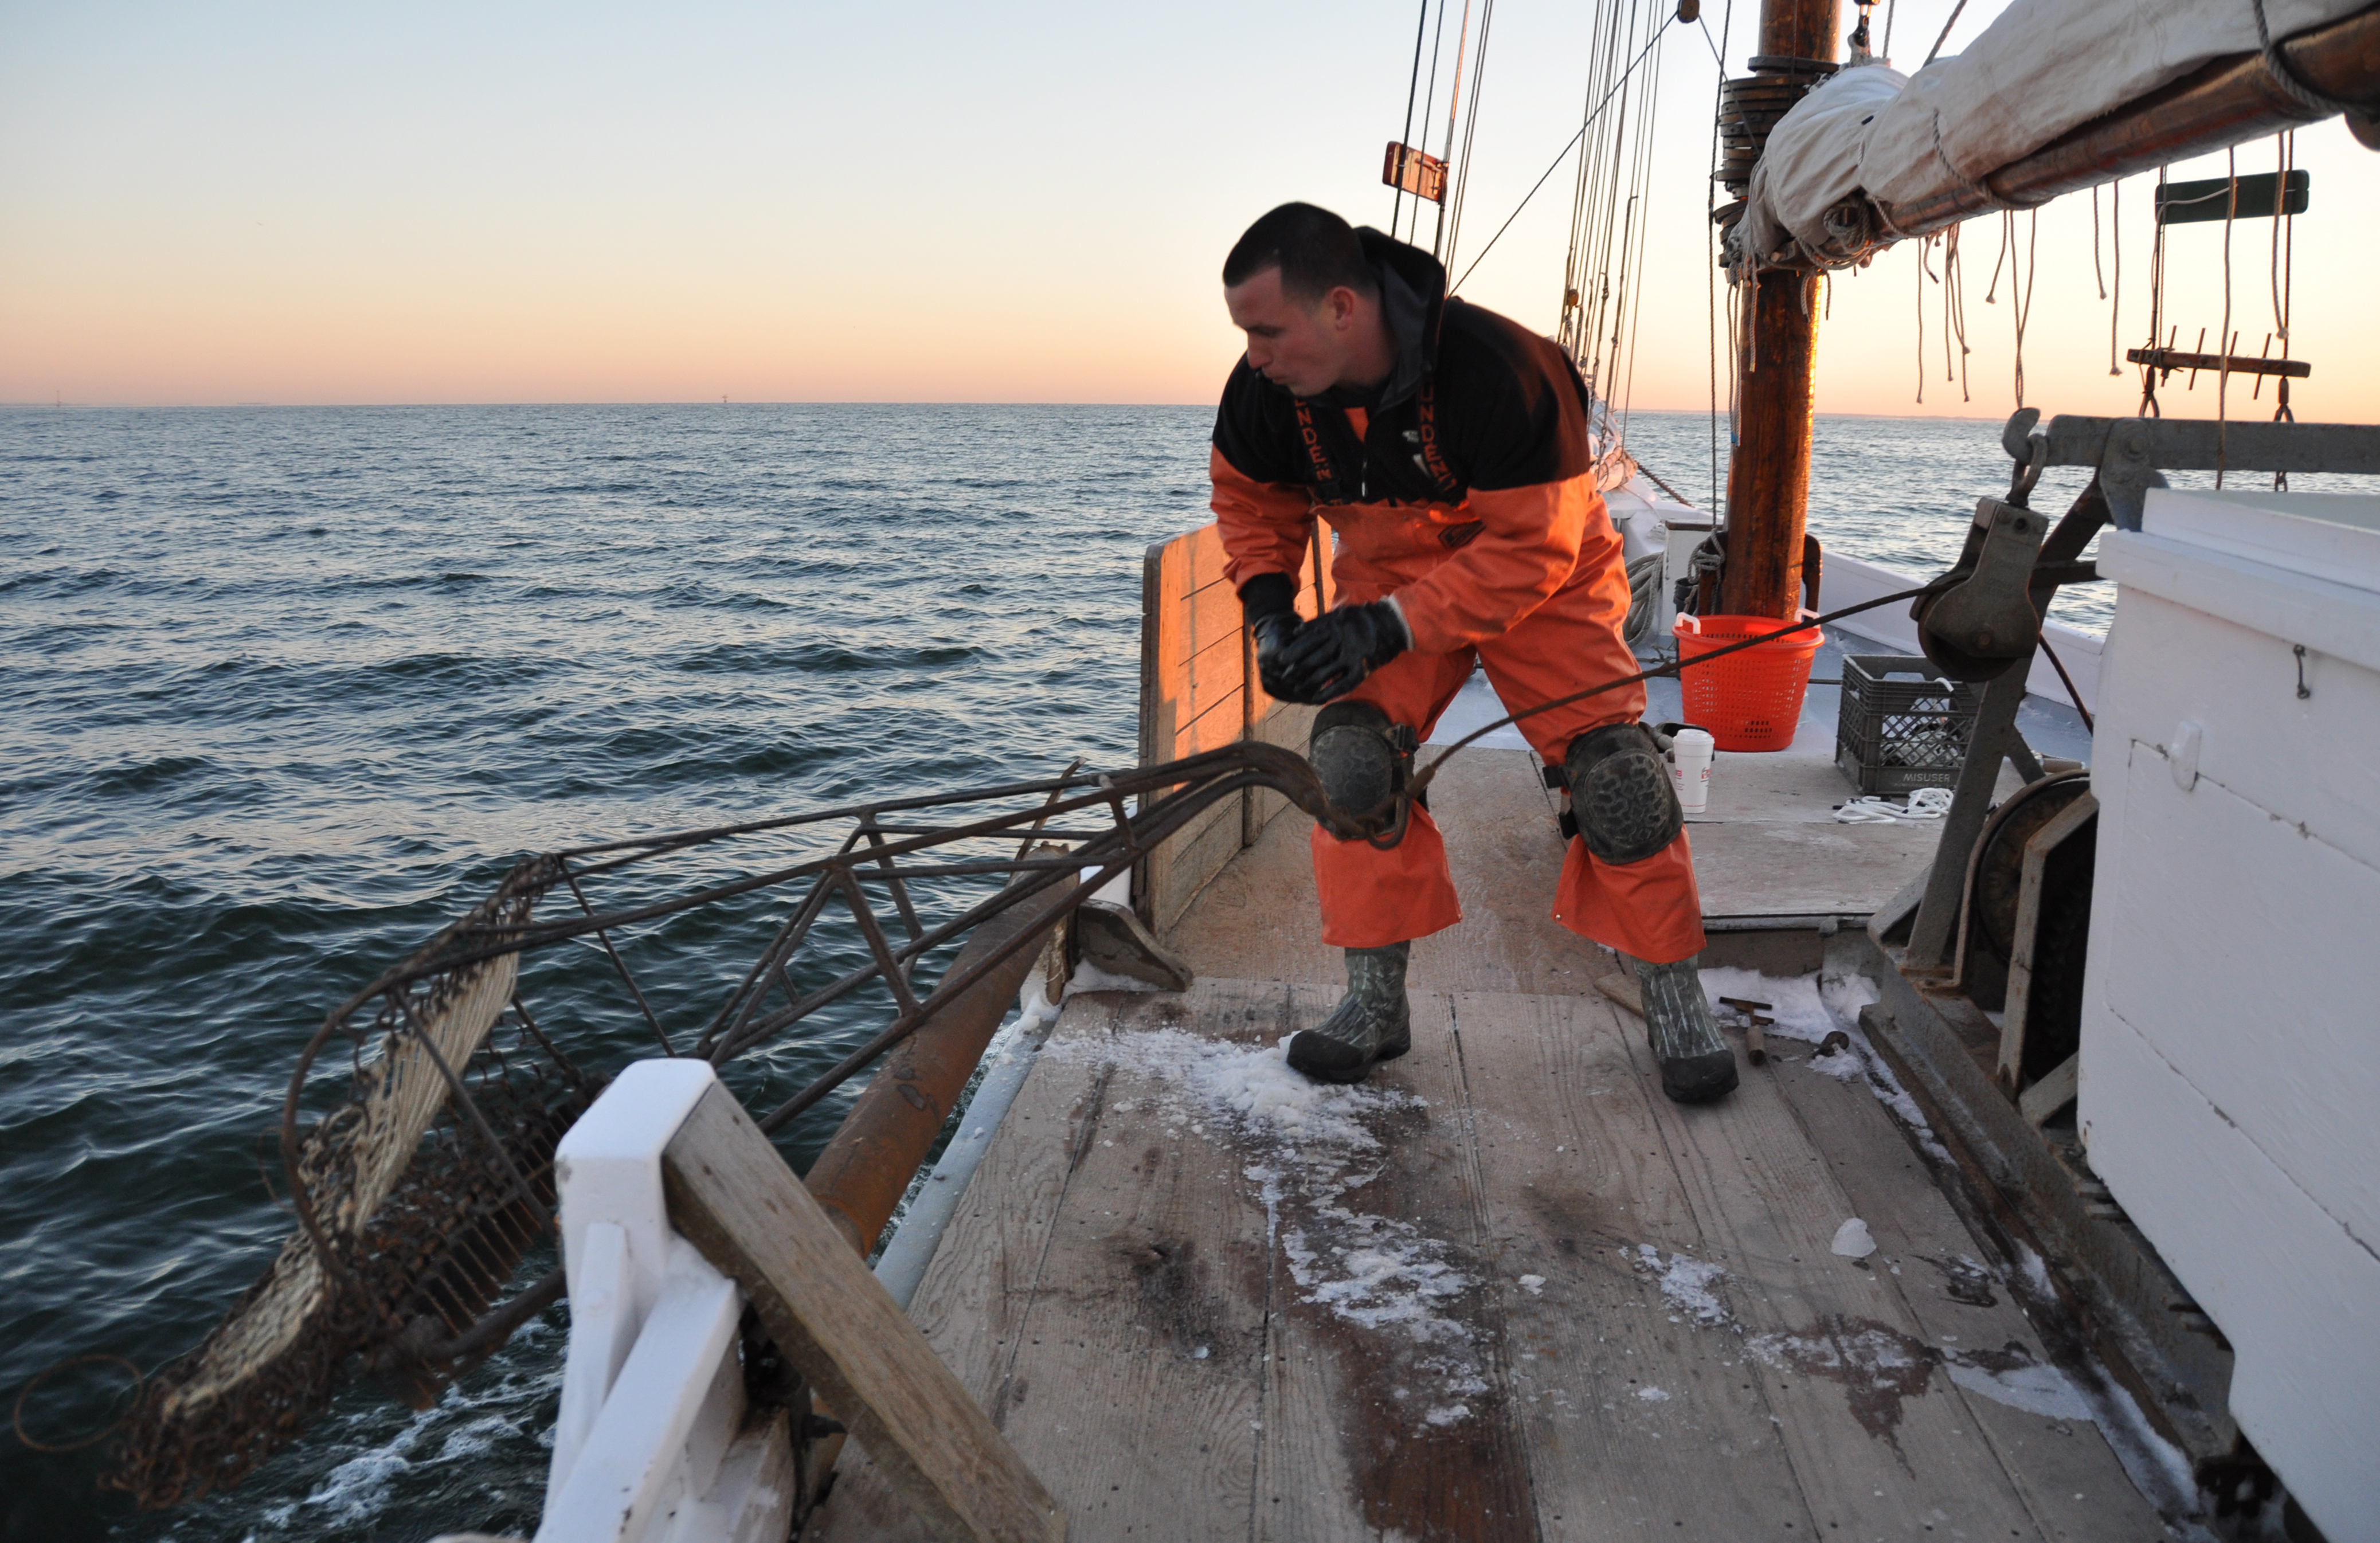 Dredging for oysters on a Chesapeake Bay skipjack, photo by multimedia journalist and environment reporter Pamela Wood.